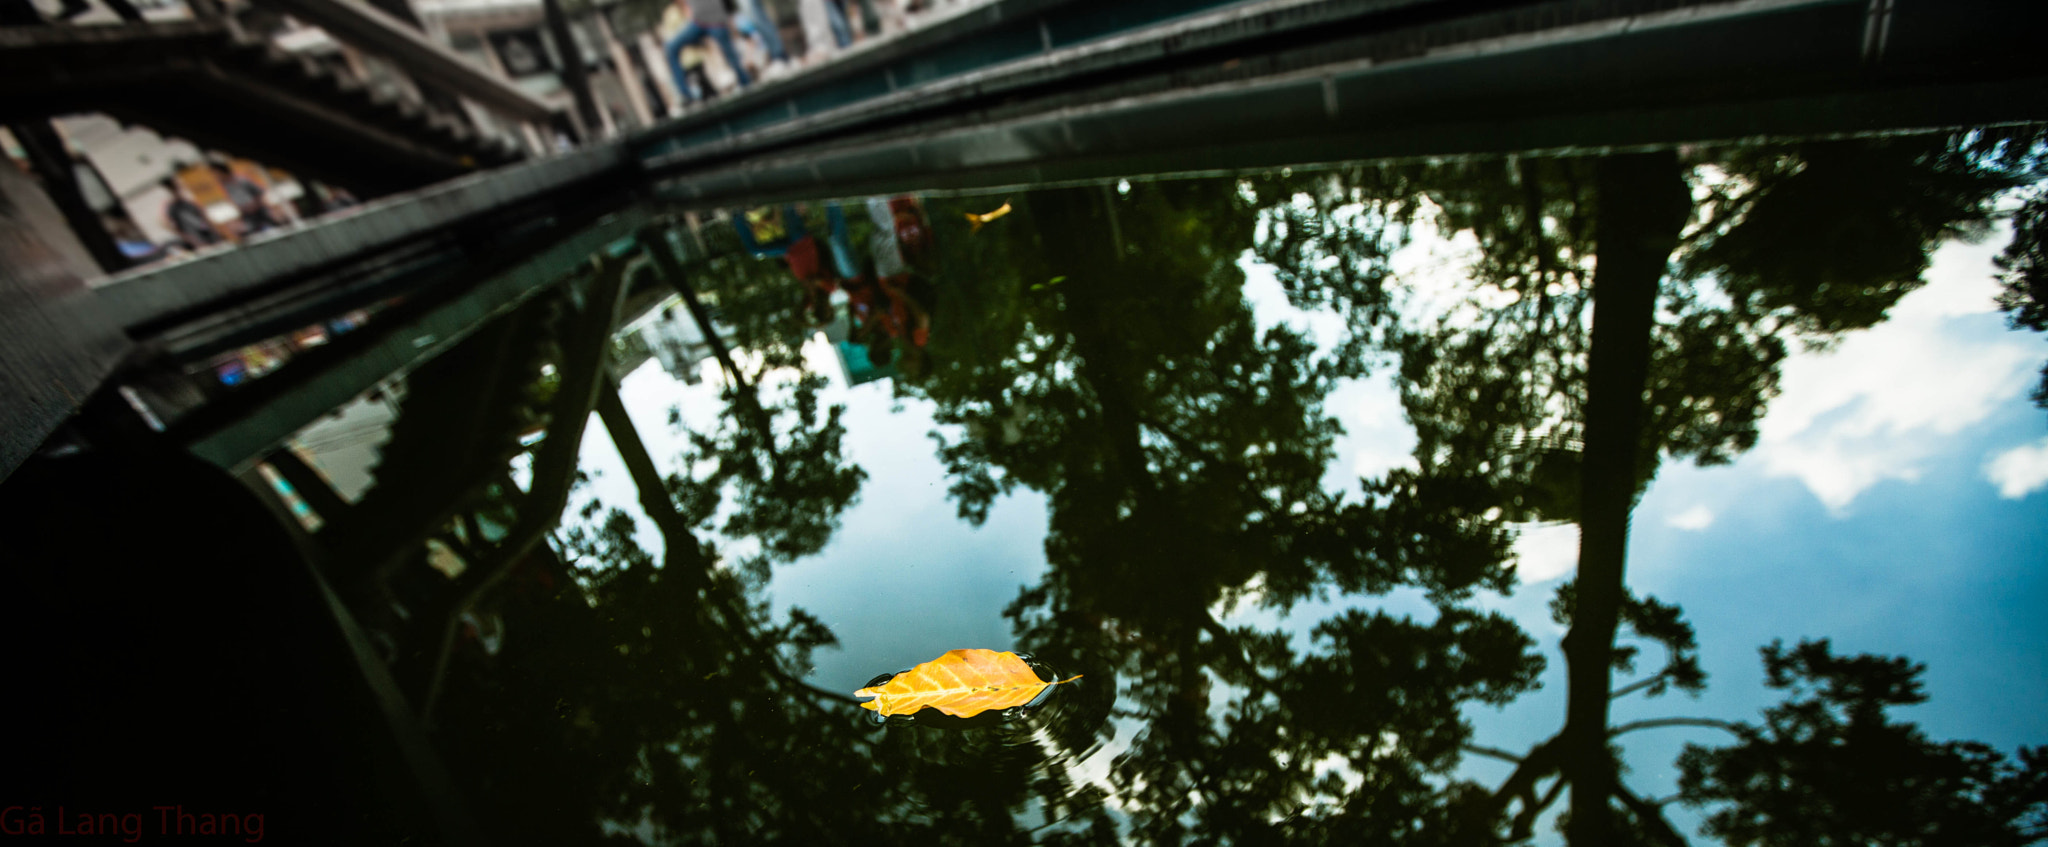 Photograph falling leaves by Tuan Phan Huy on 500px